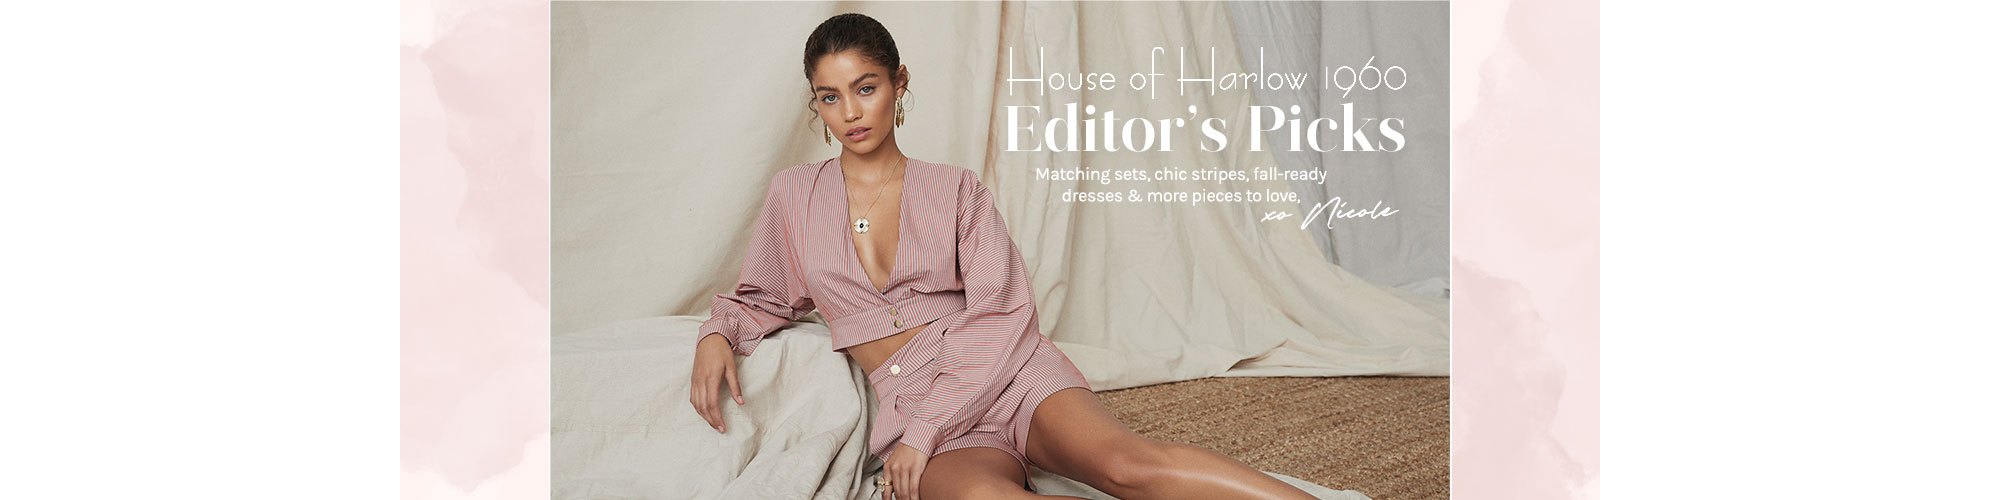 House of Harlow 1960 Editor\'s Picks. Matching sets, chic stripes, fall-ready dresses & more pieces to love, xo Nicole. Shop The Collection.